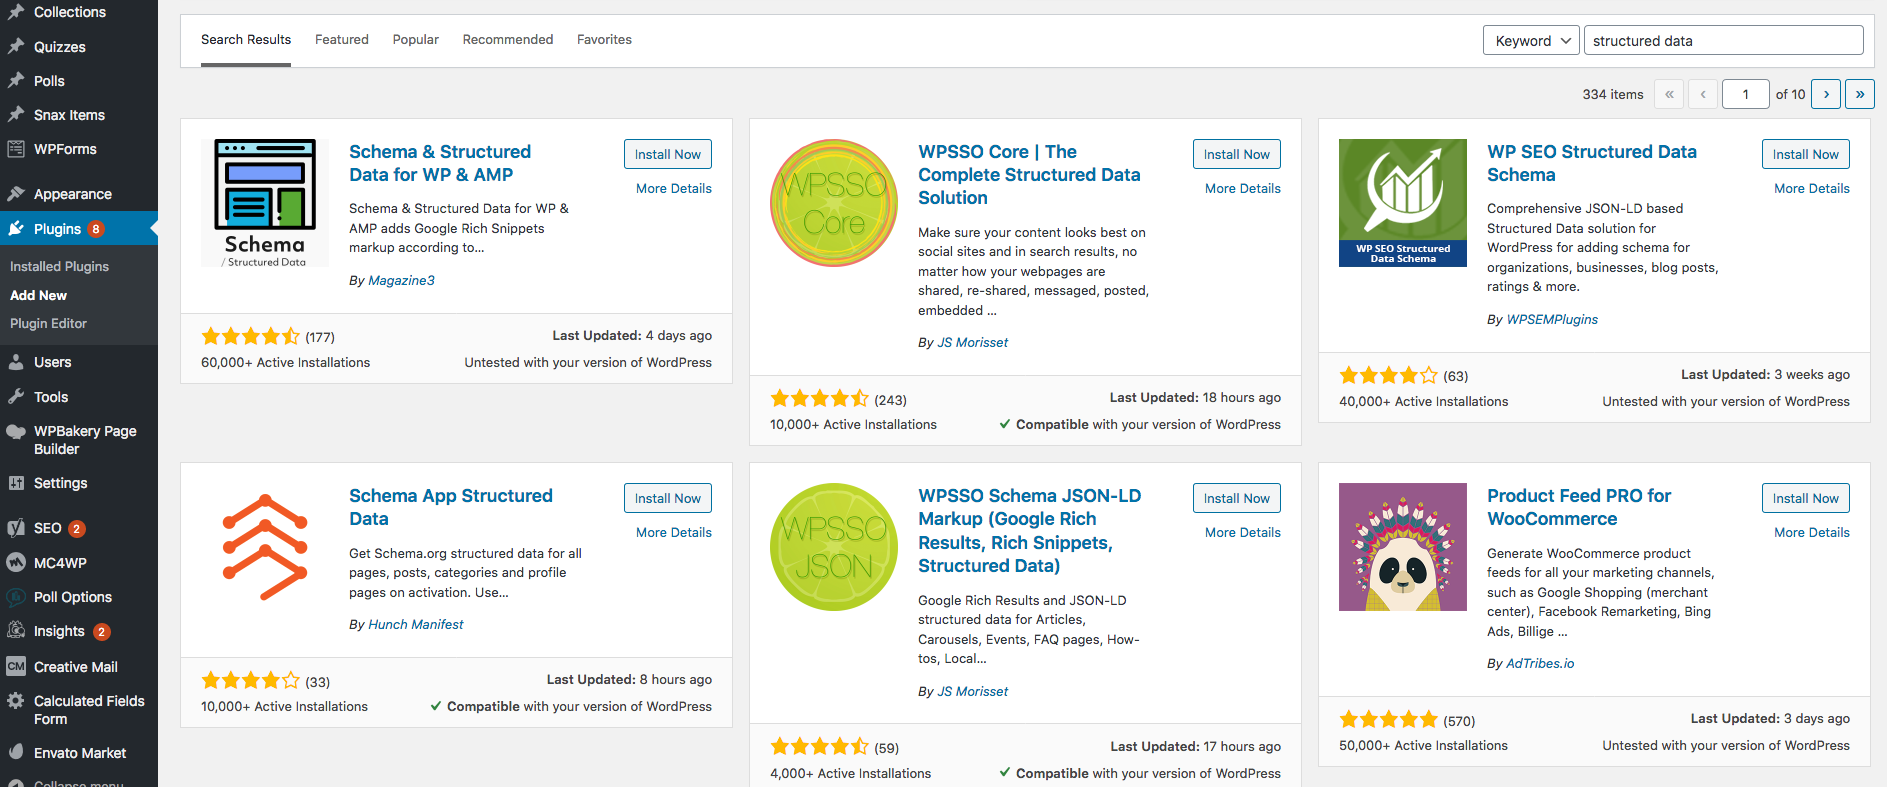 Wordpress plugins overview page.